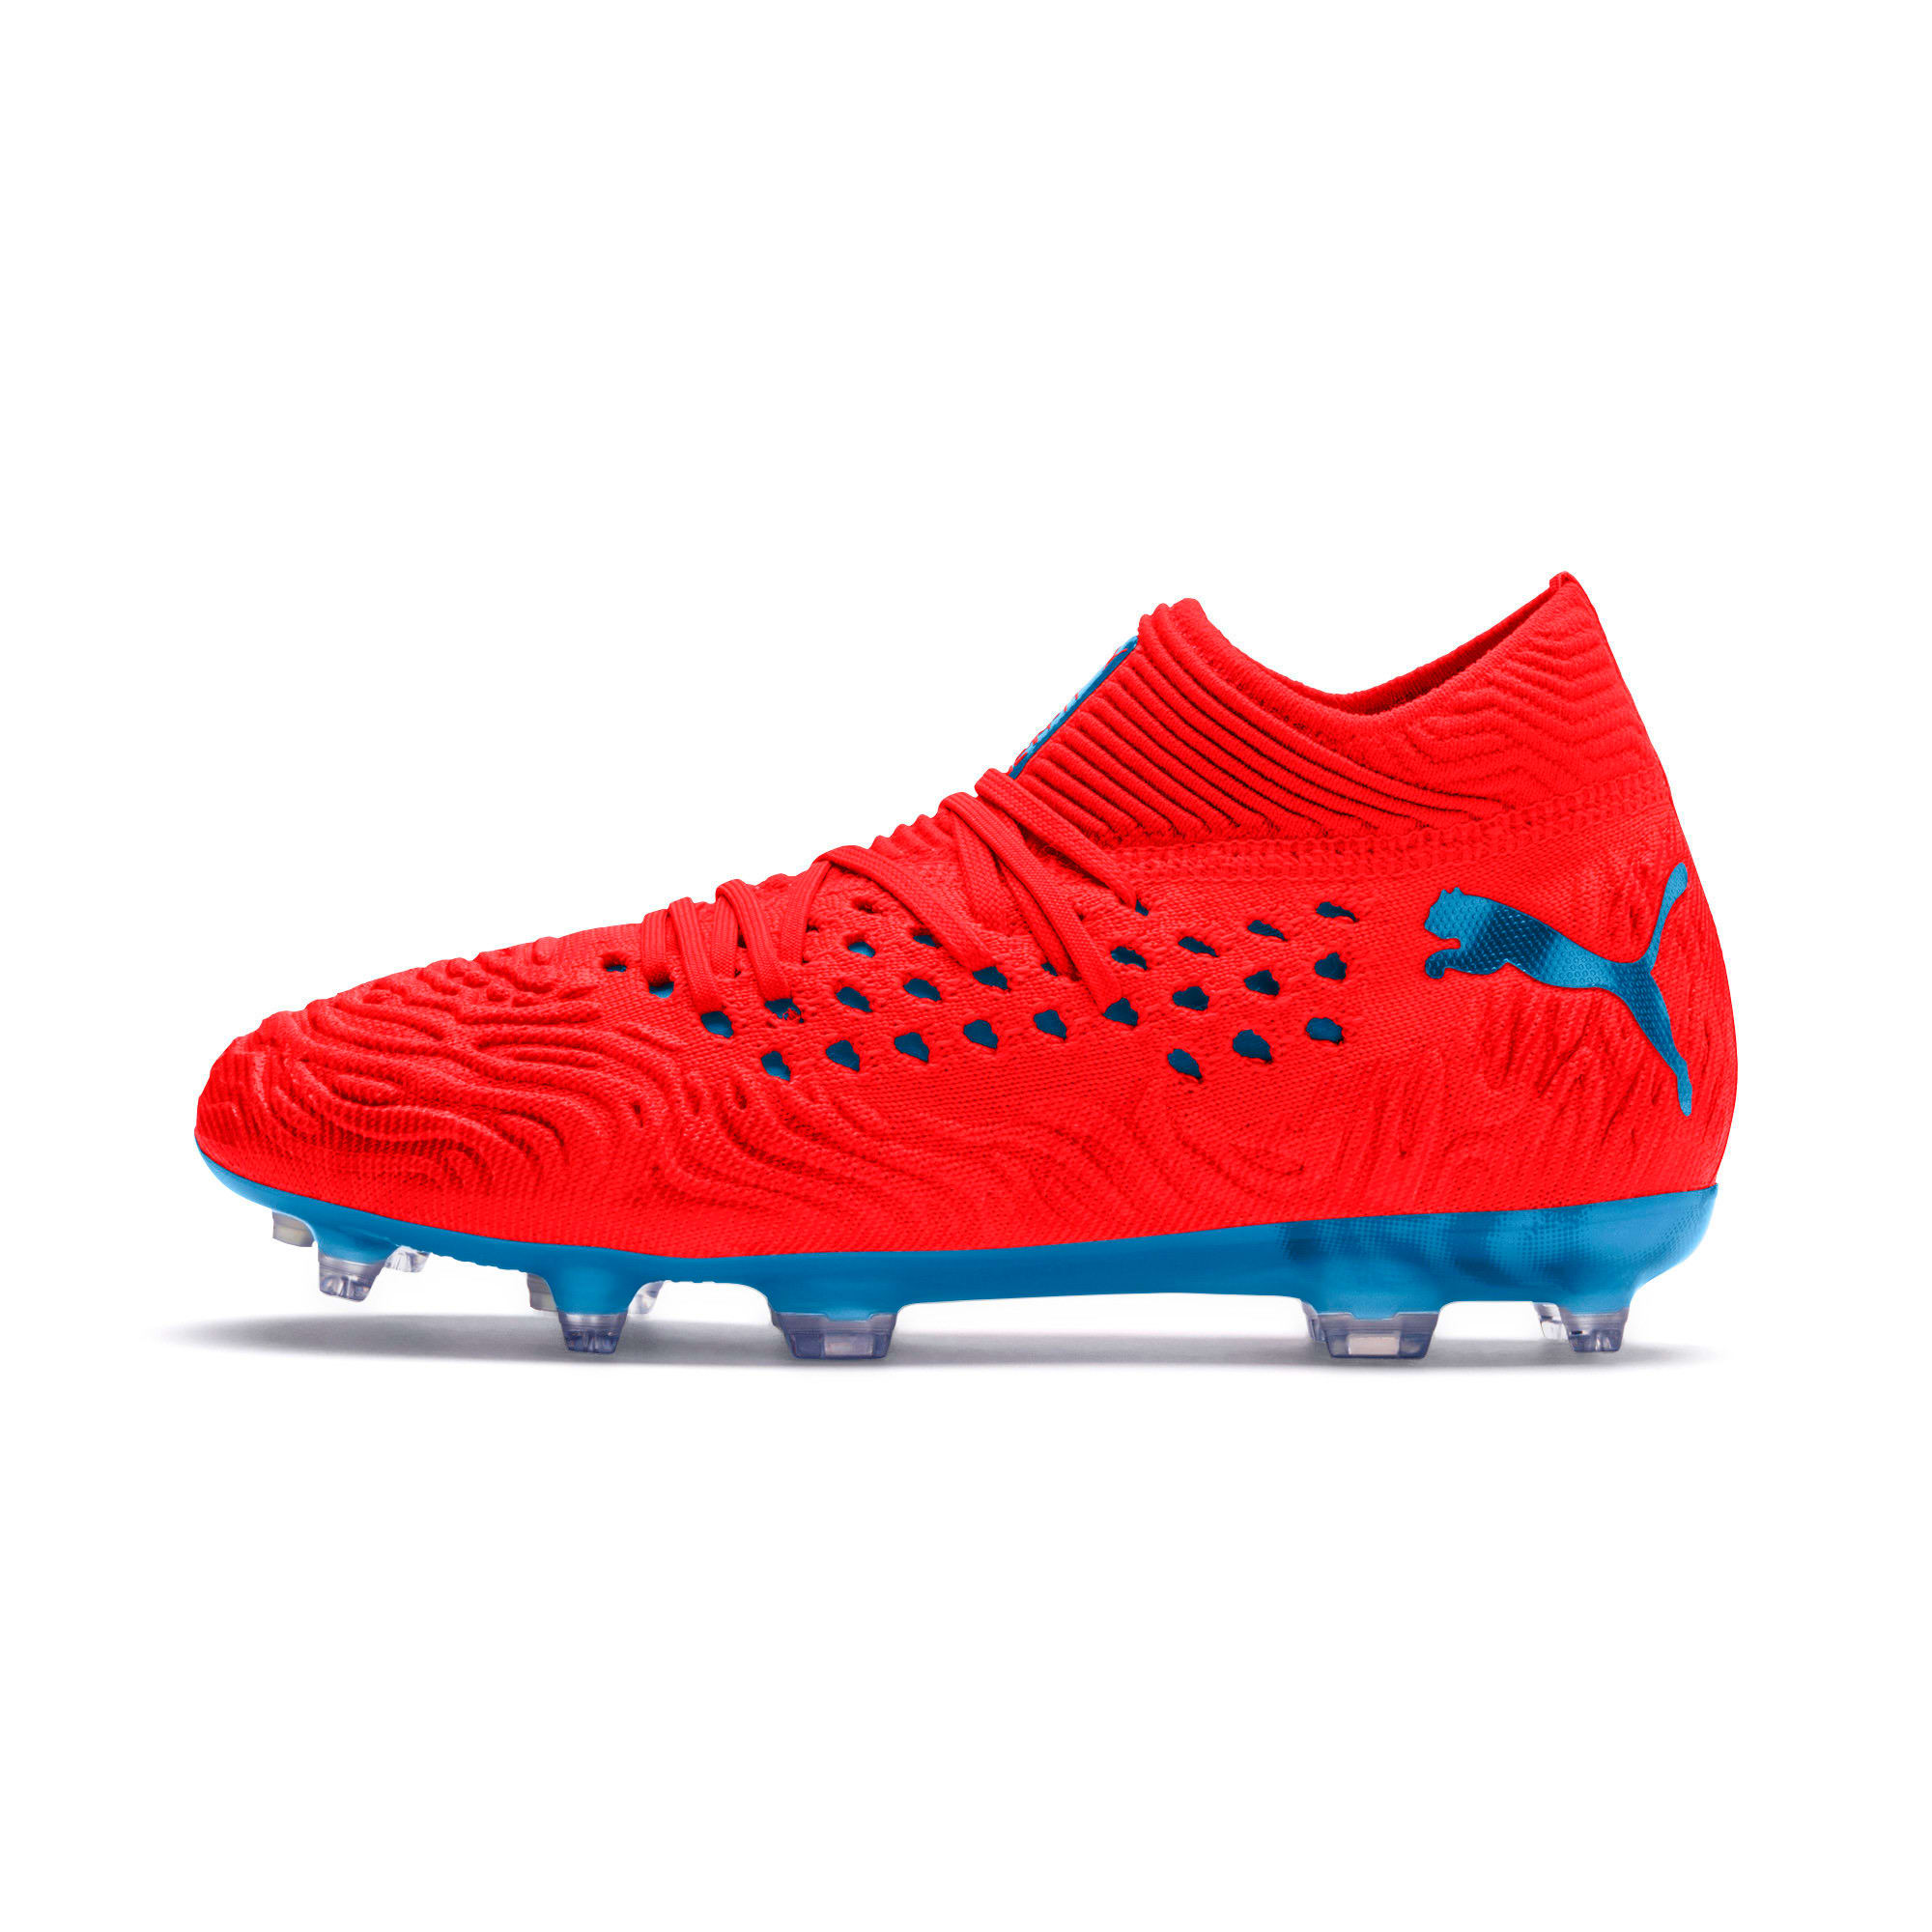 Thumbnail 1 of FUTURE 19.1 NETFIT FG/AG Soccer Cleats JR, Red Blast-Bleu Azur, medium